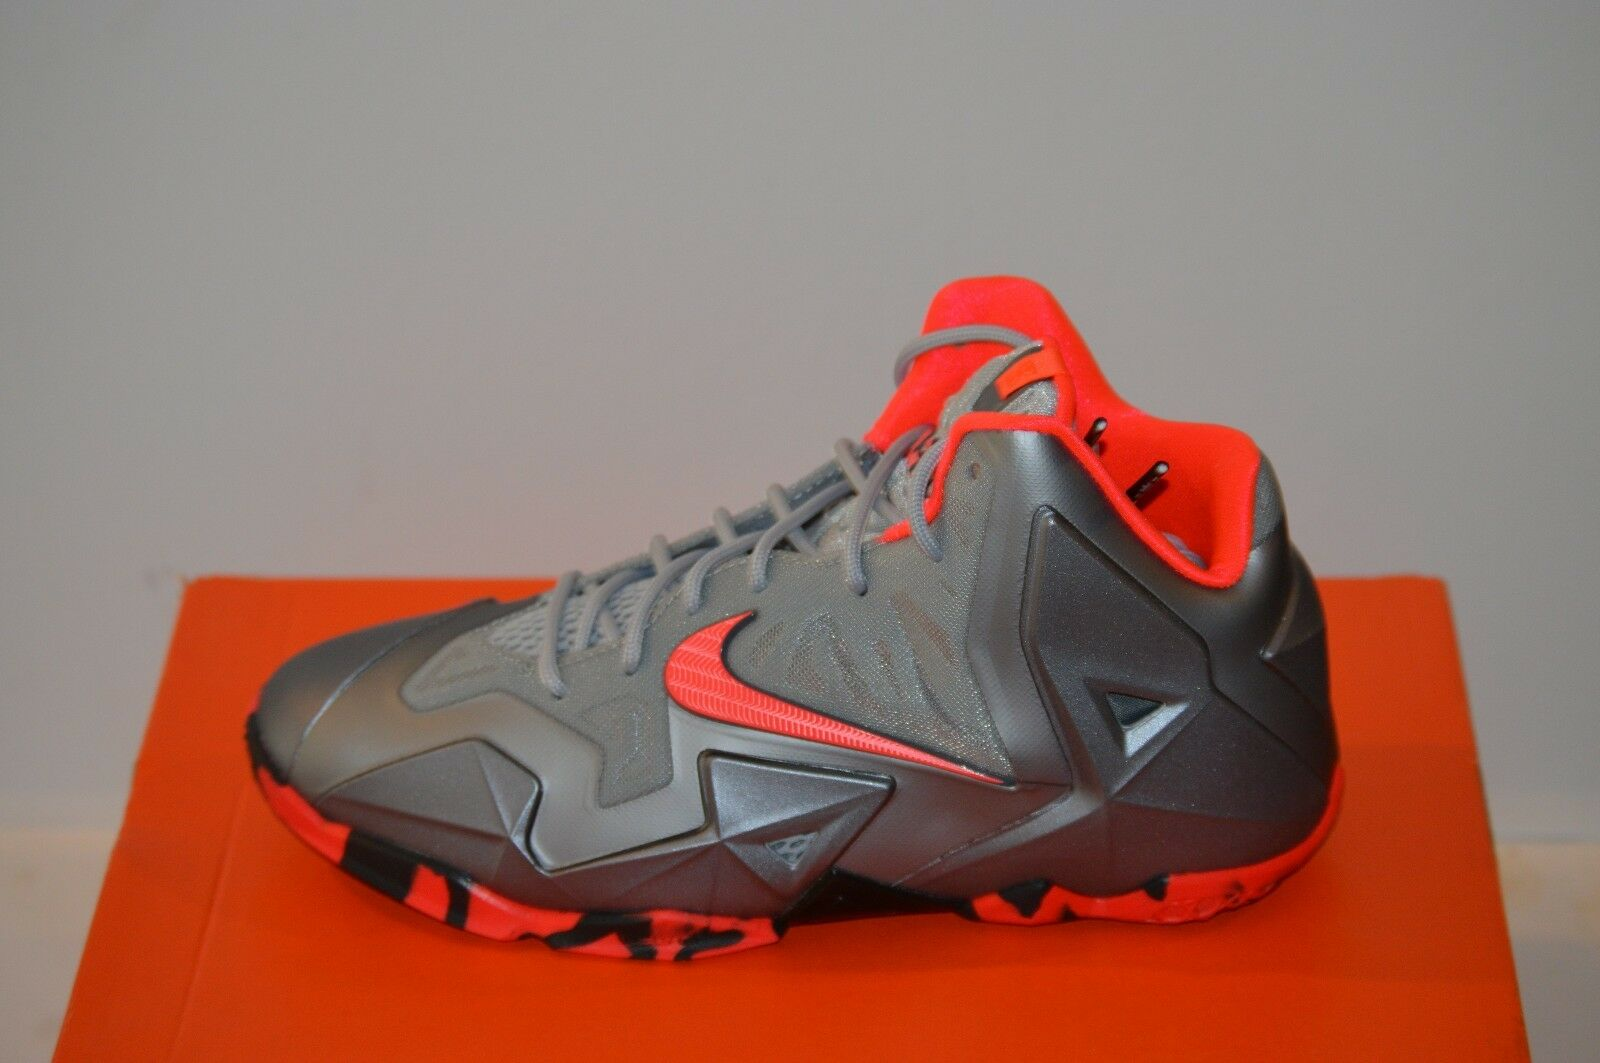 Nike Lebron 11 XI Wolf Grey size 6.5Y The most popular shoes for men and women